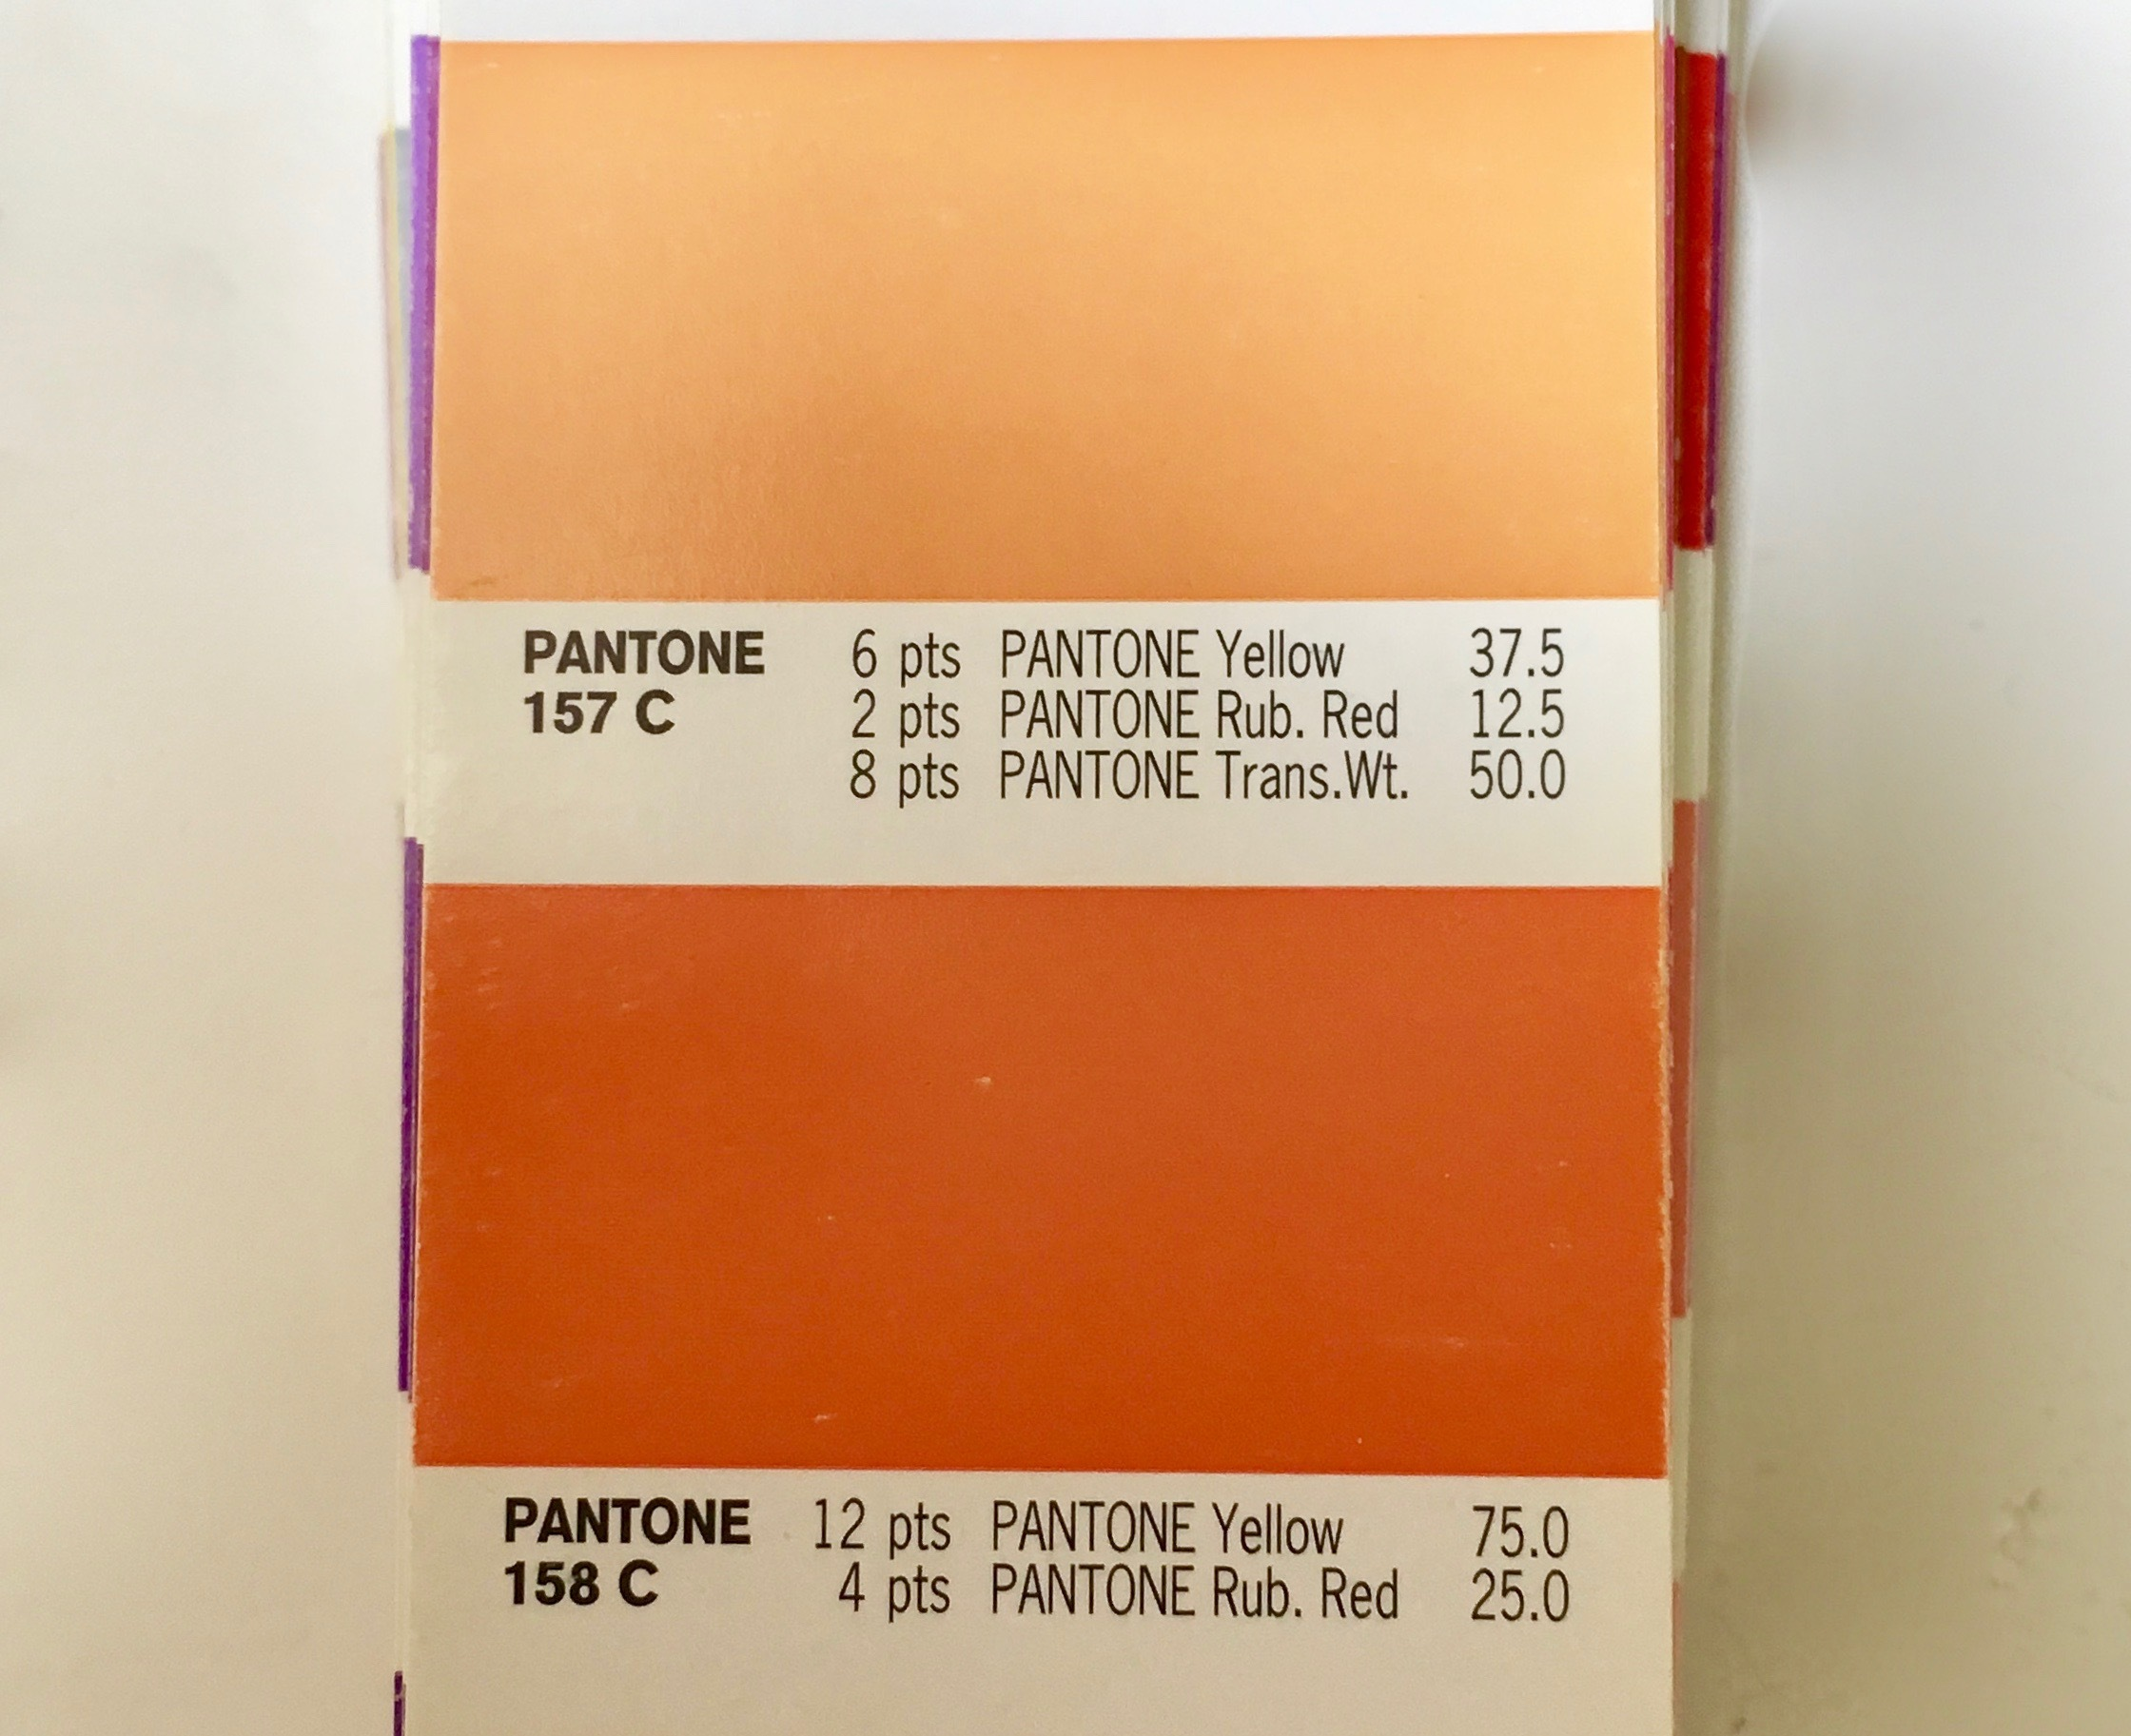 Website rgb colors - In Part 1 We Discussed The Pantone Pms Brand Color System The Next Step Is To Convert These Colors To Their R G B Values For Our Clients